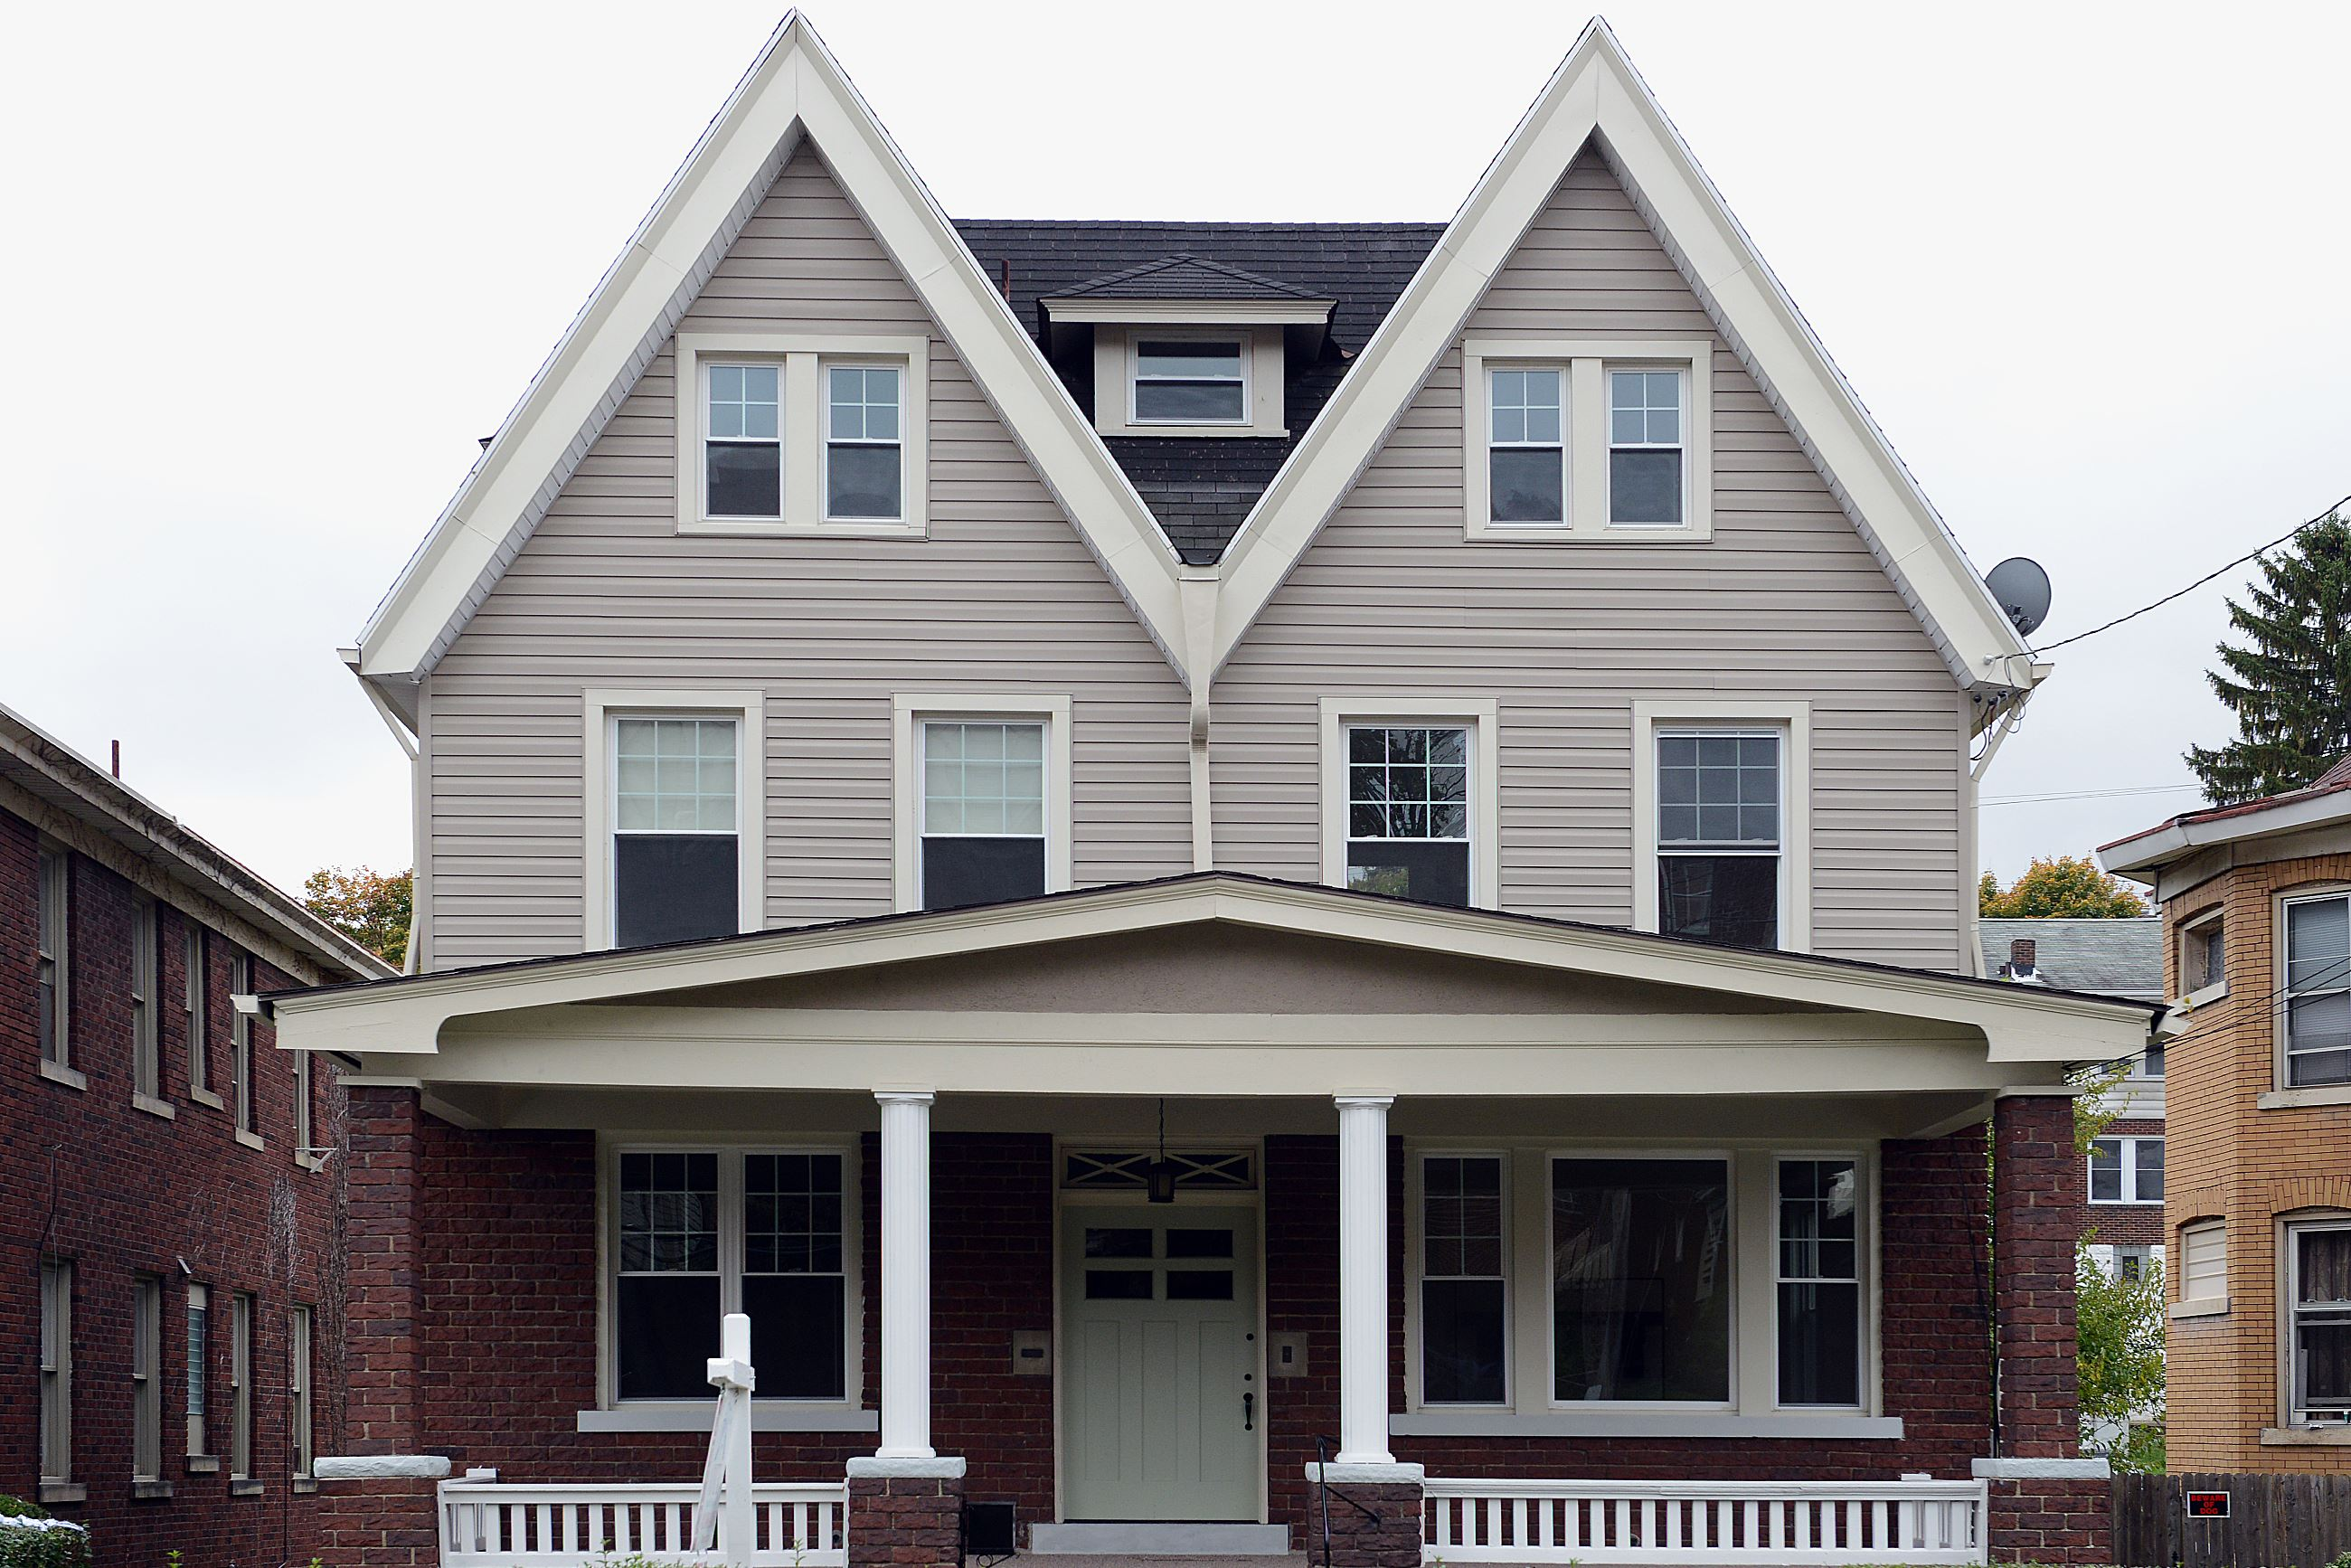 Auto Garage For Sale Pittsburgh: Buying Here: Two-gabled House In Brookline